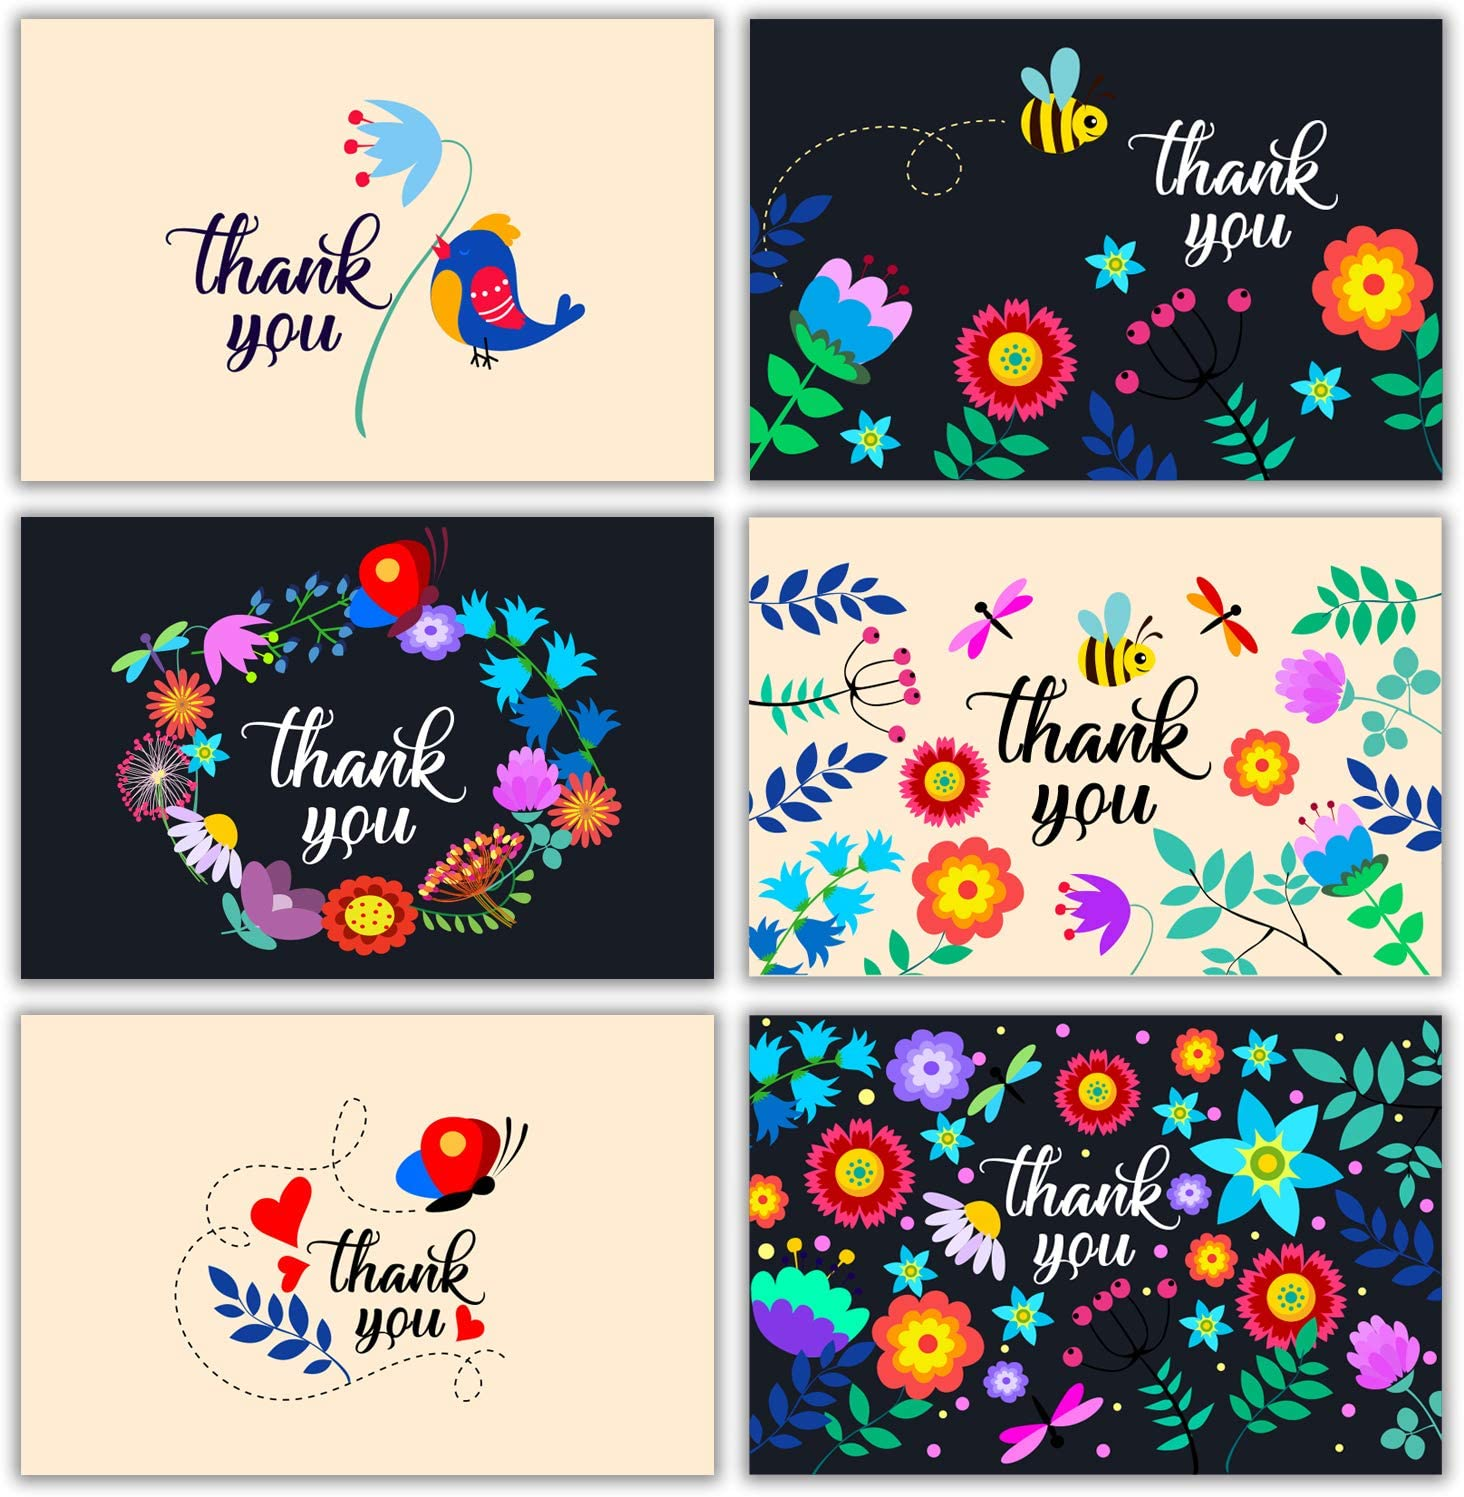 Floral Thank You Cards Bulk 36 Thank You Notes w/Stickers & White Envelopes – 4x6 Blank Note Cards – Perfect for Weddings, Bridal Showers, Graduation, and Baby Showers